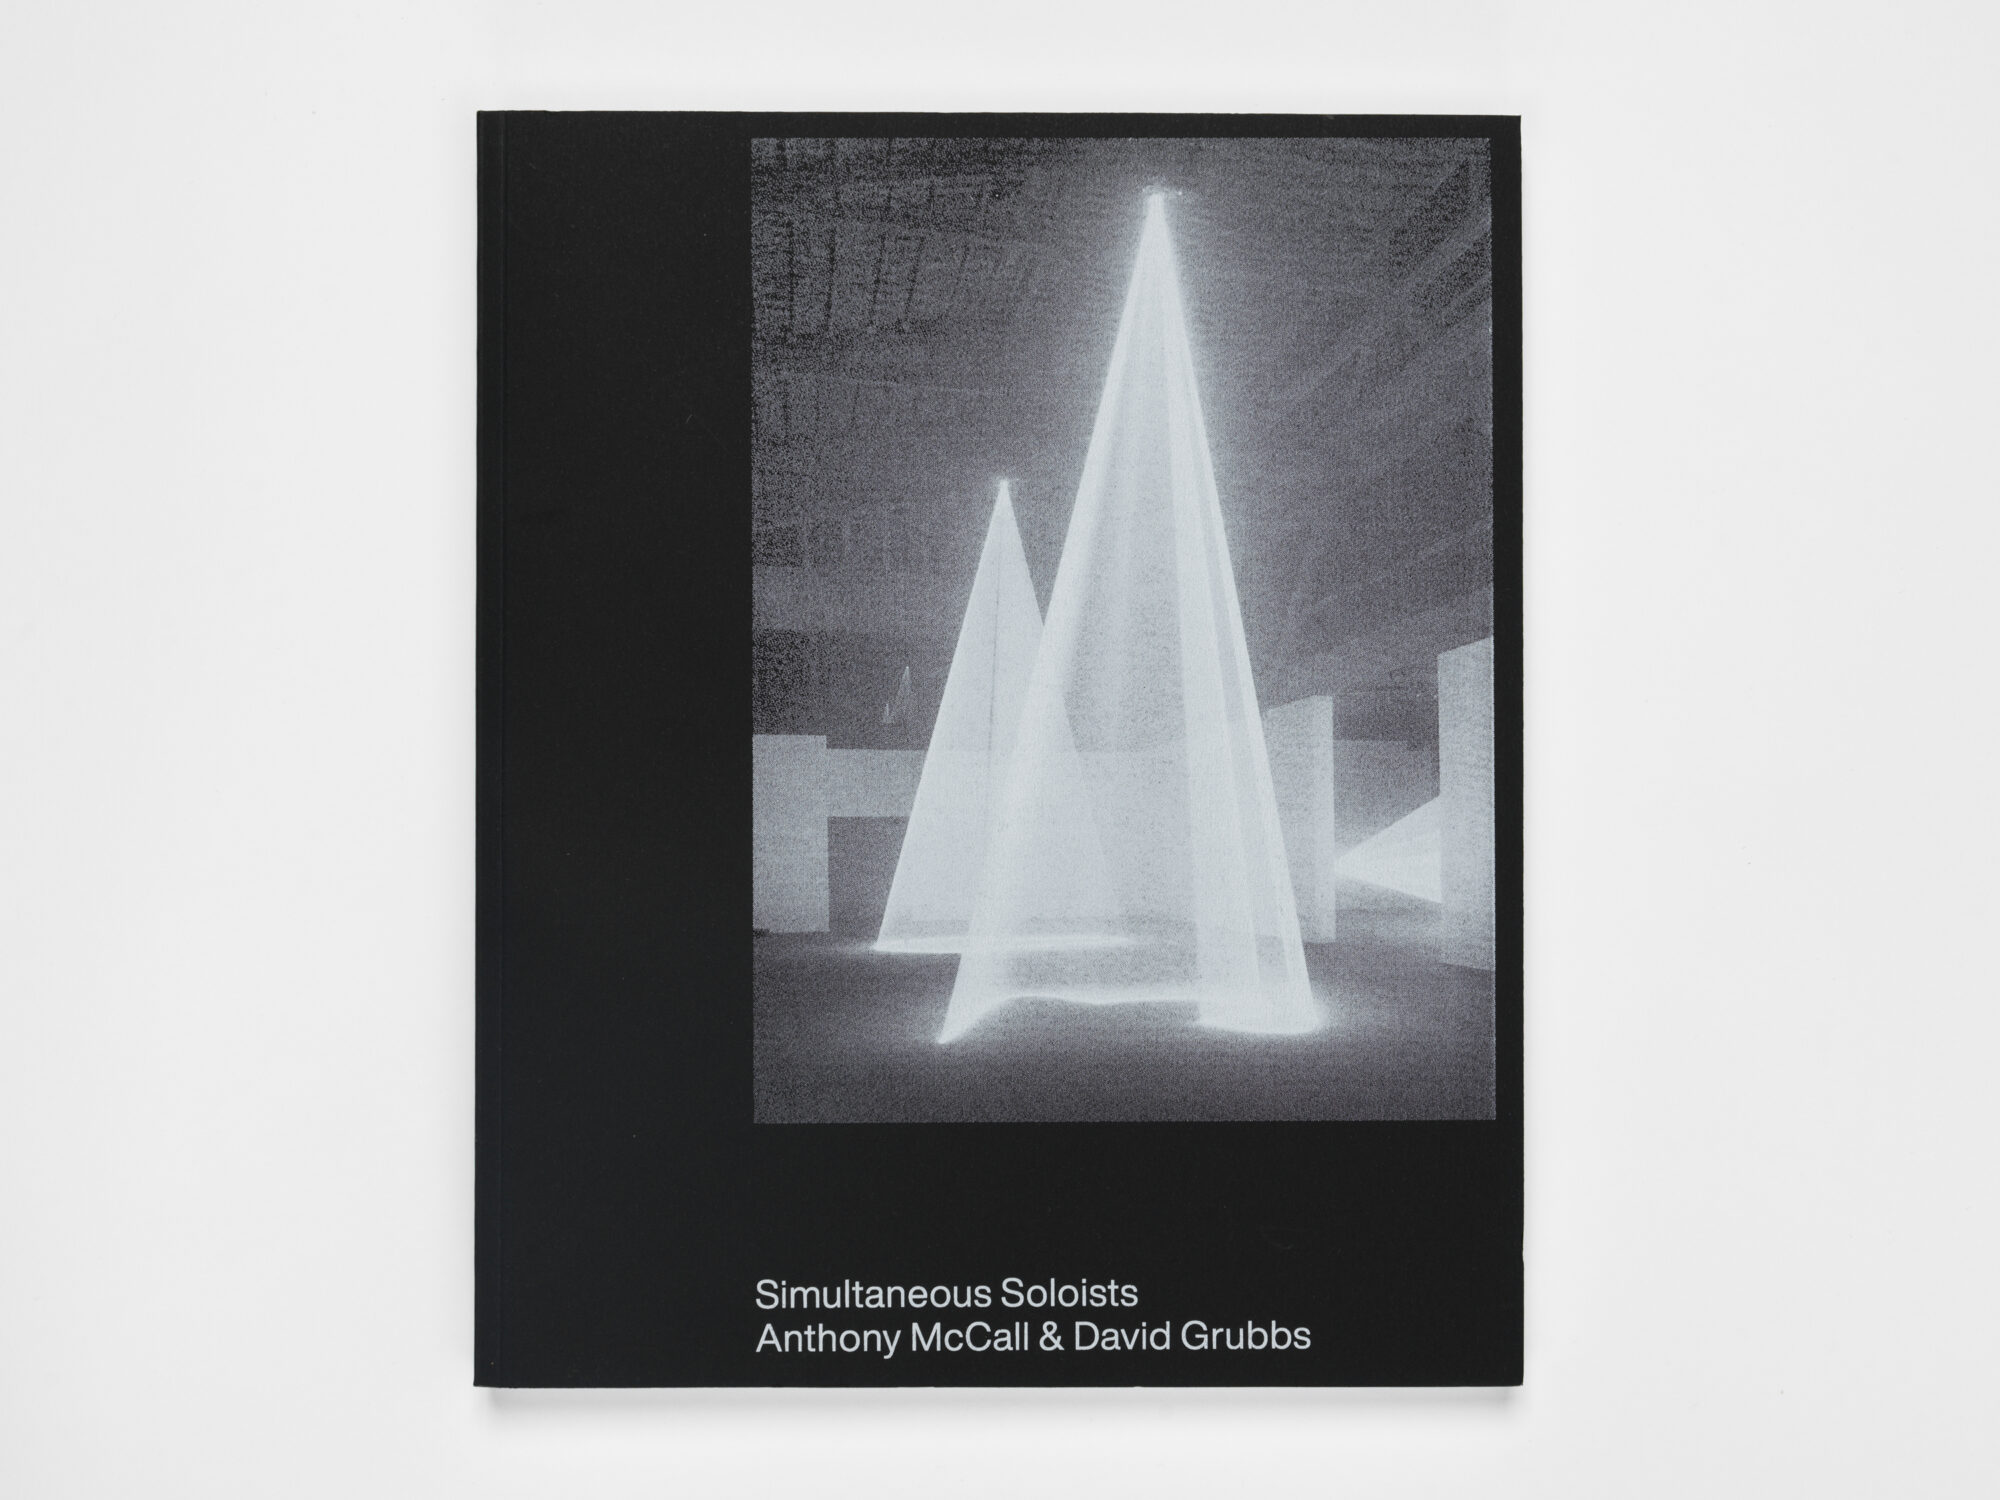 cover of David Grubbs and Anthony McCall	Simultaneous Soloists. Pioneer Works Press, 2019.	N6797.M335 A4 2019